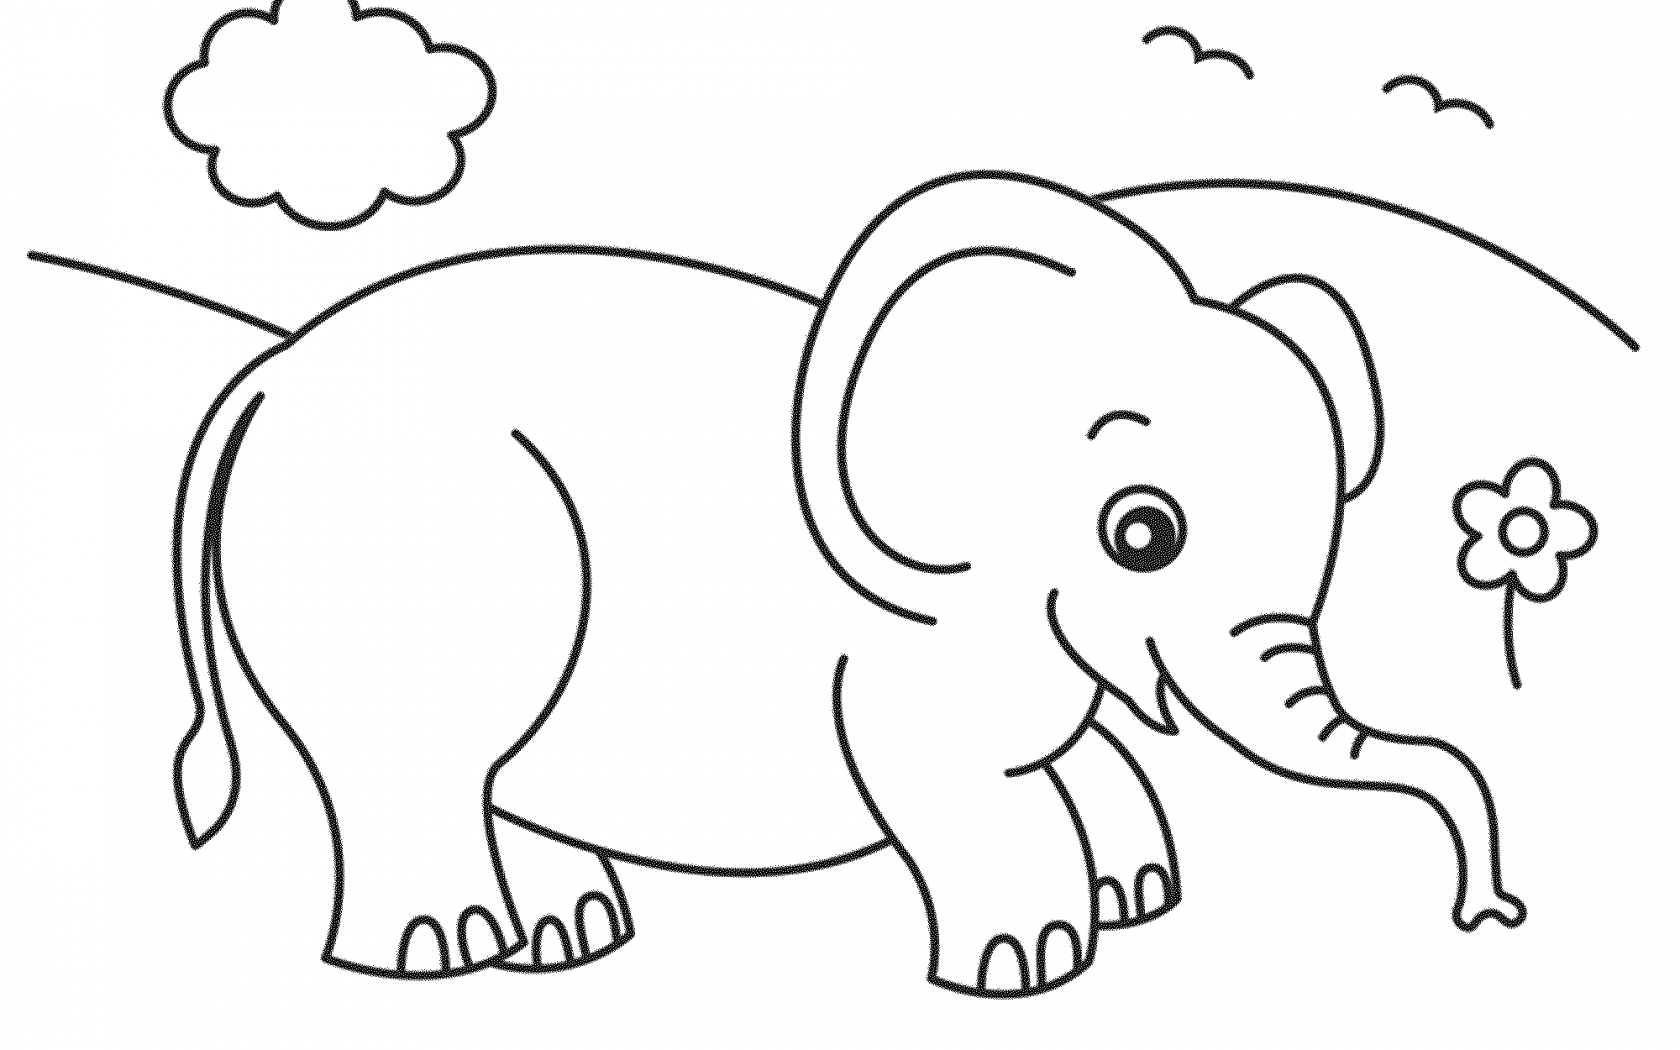 Elephant Outline Drawing at GetDrawings com | Free for personal use